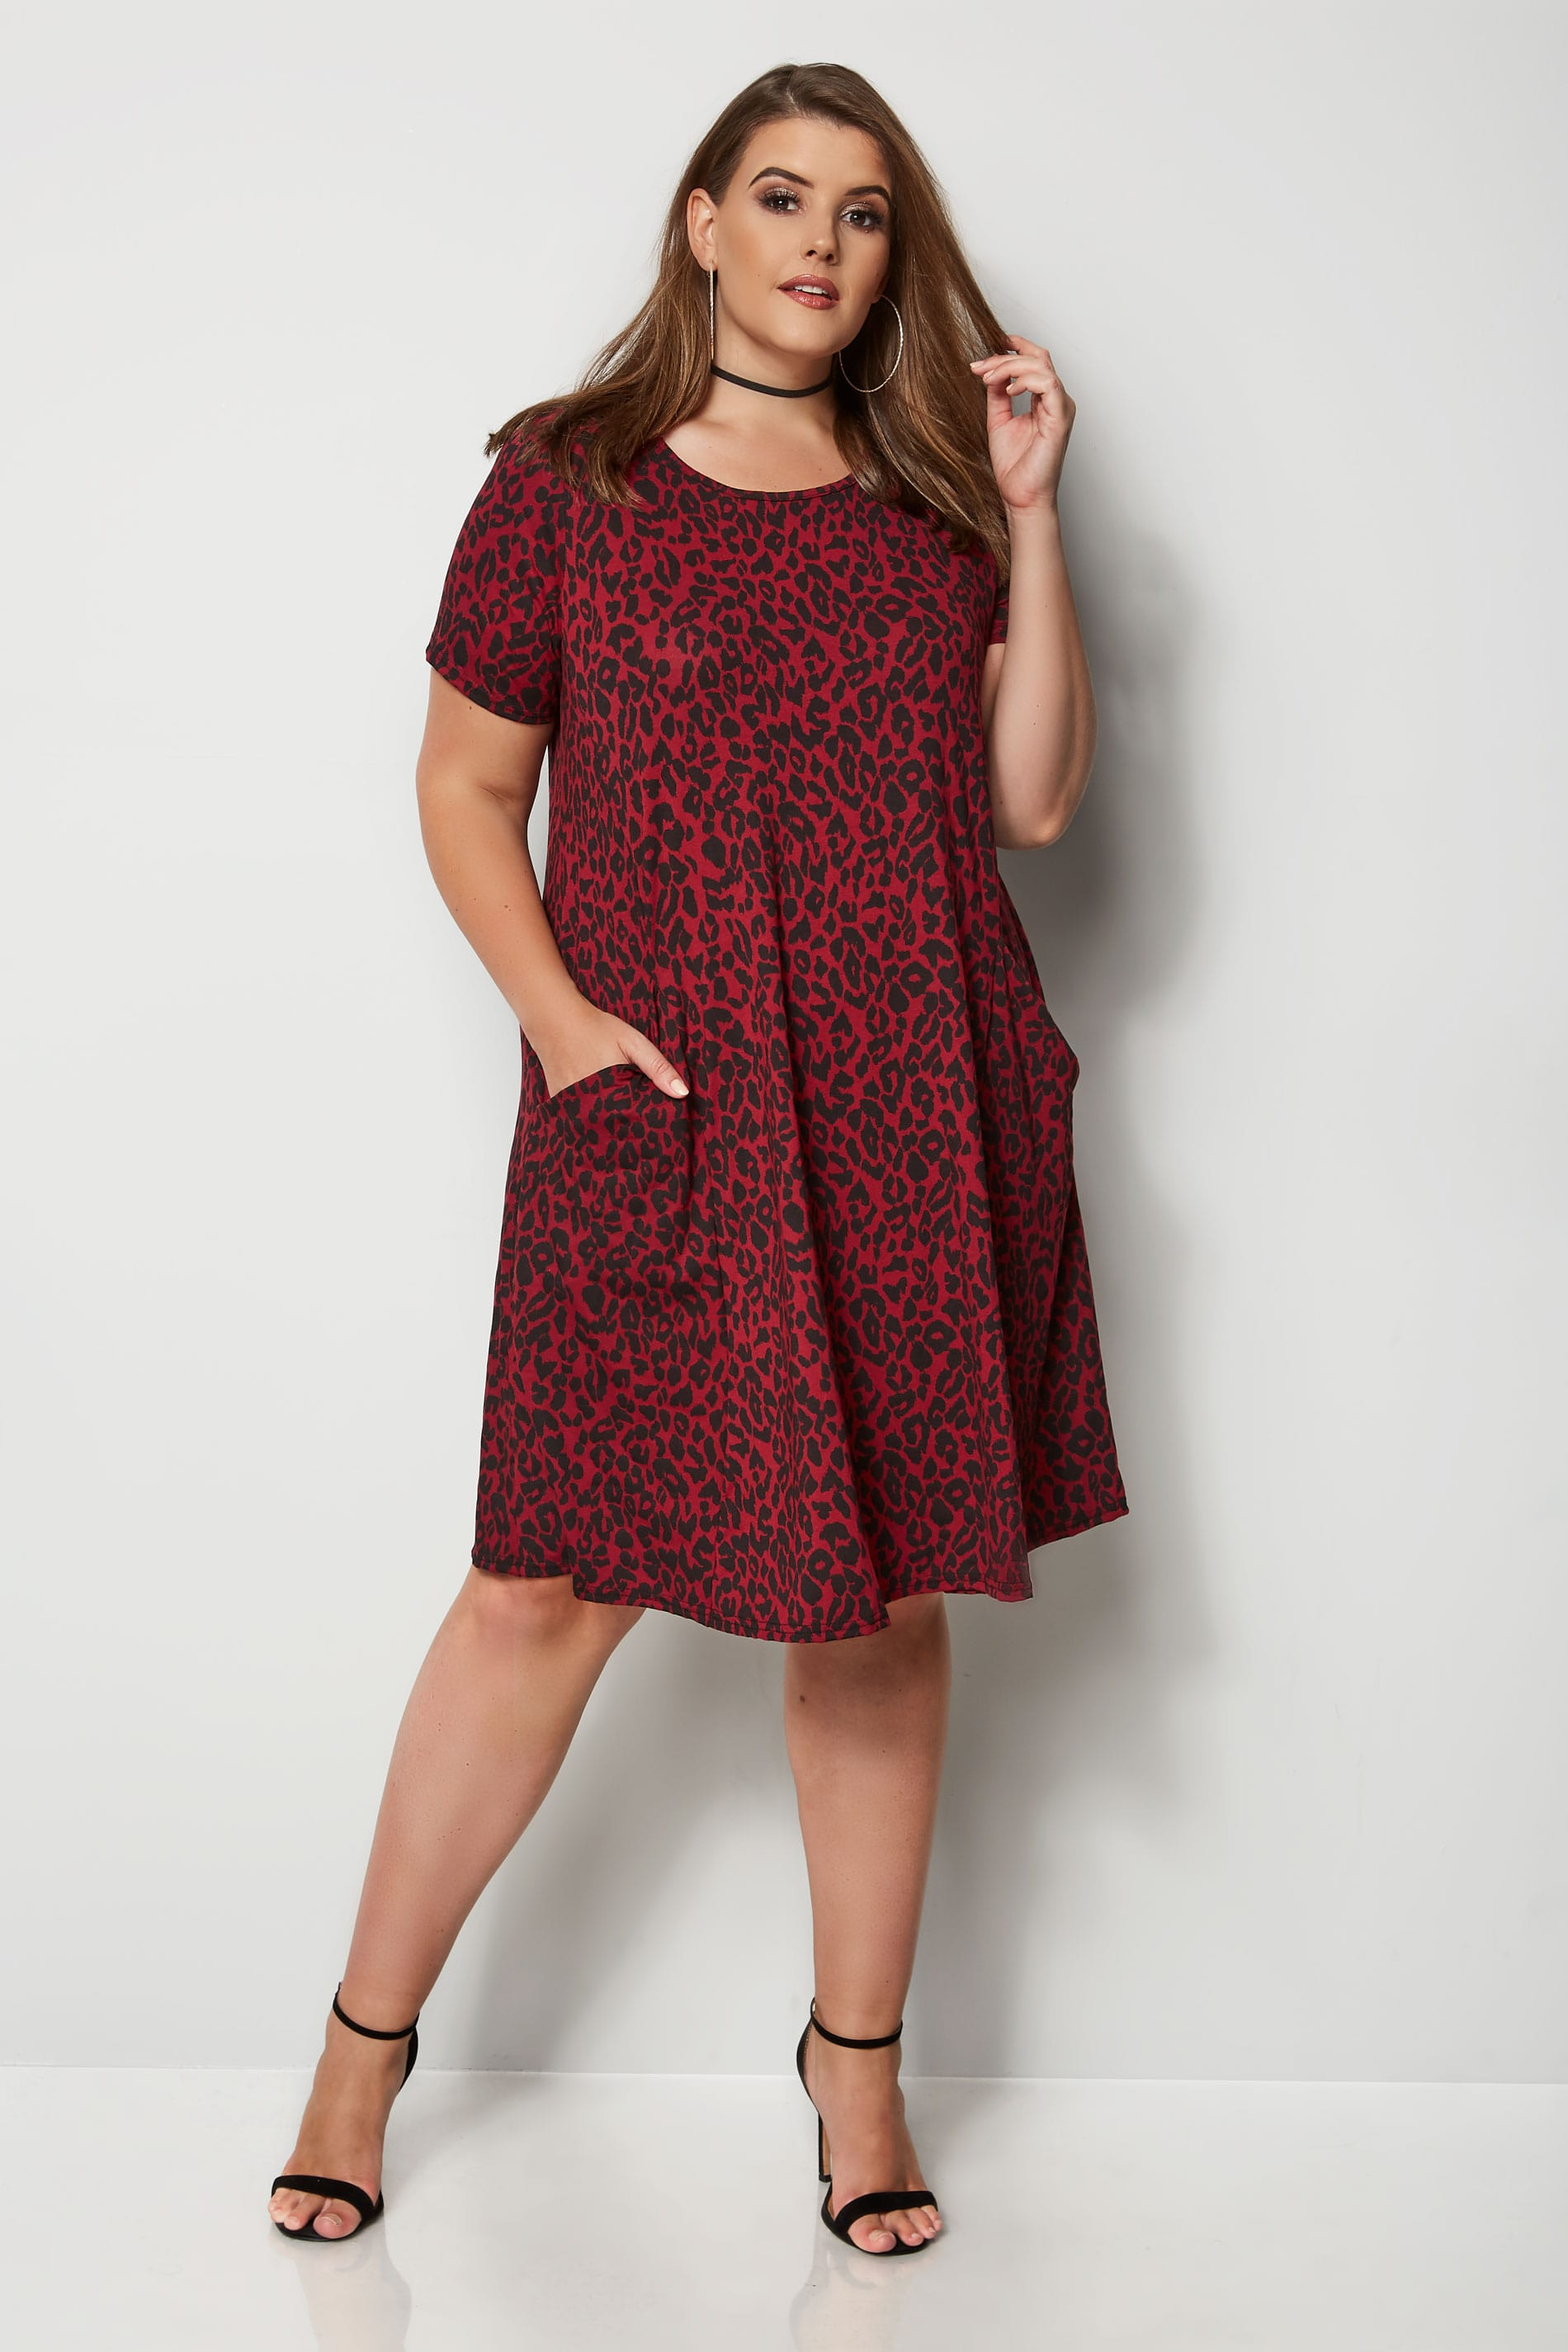 Dark Red Animal Print Drape Pocket Dress, Plus size 16 to 36